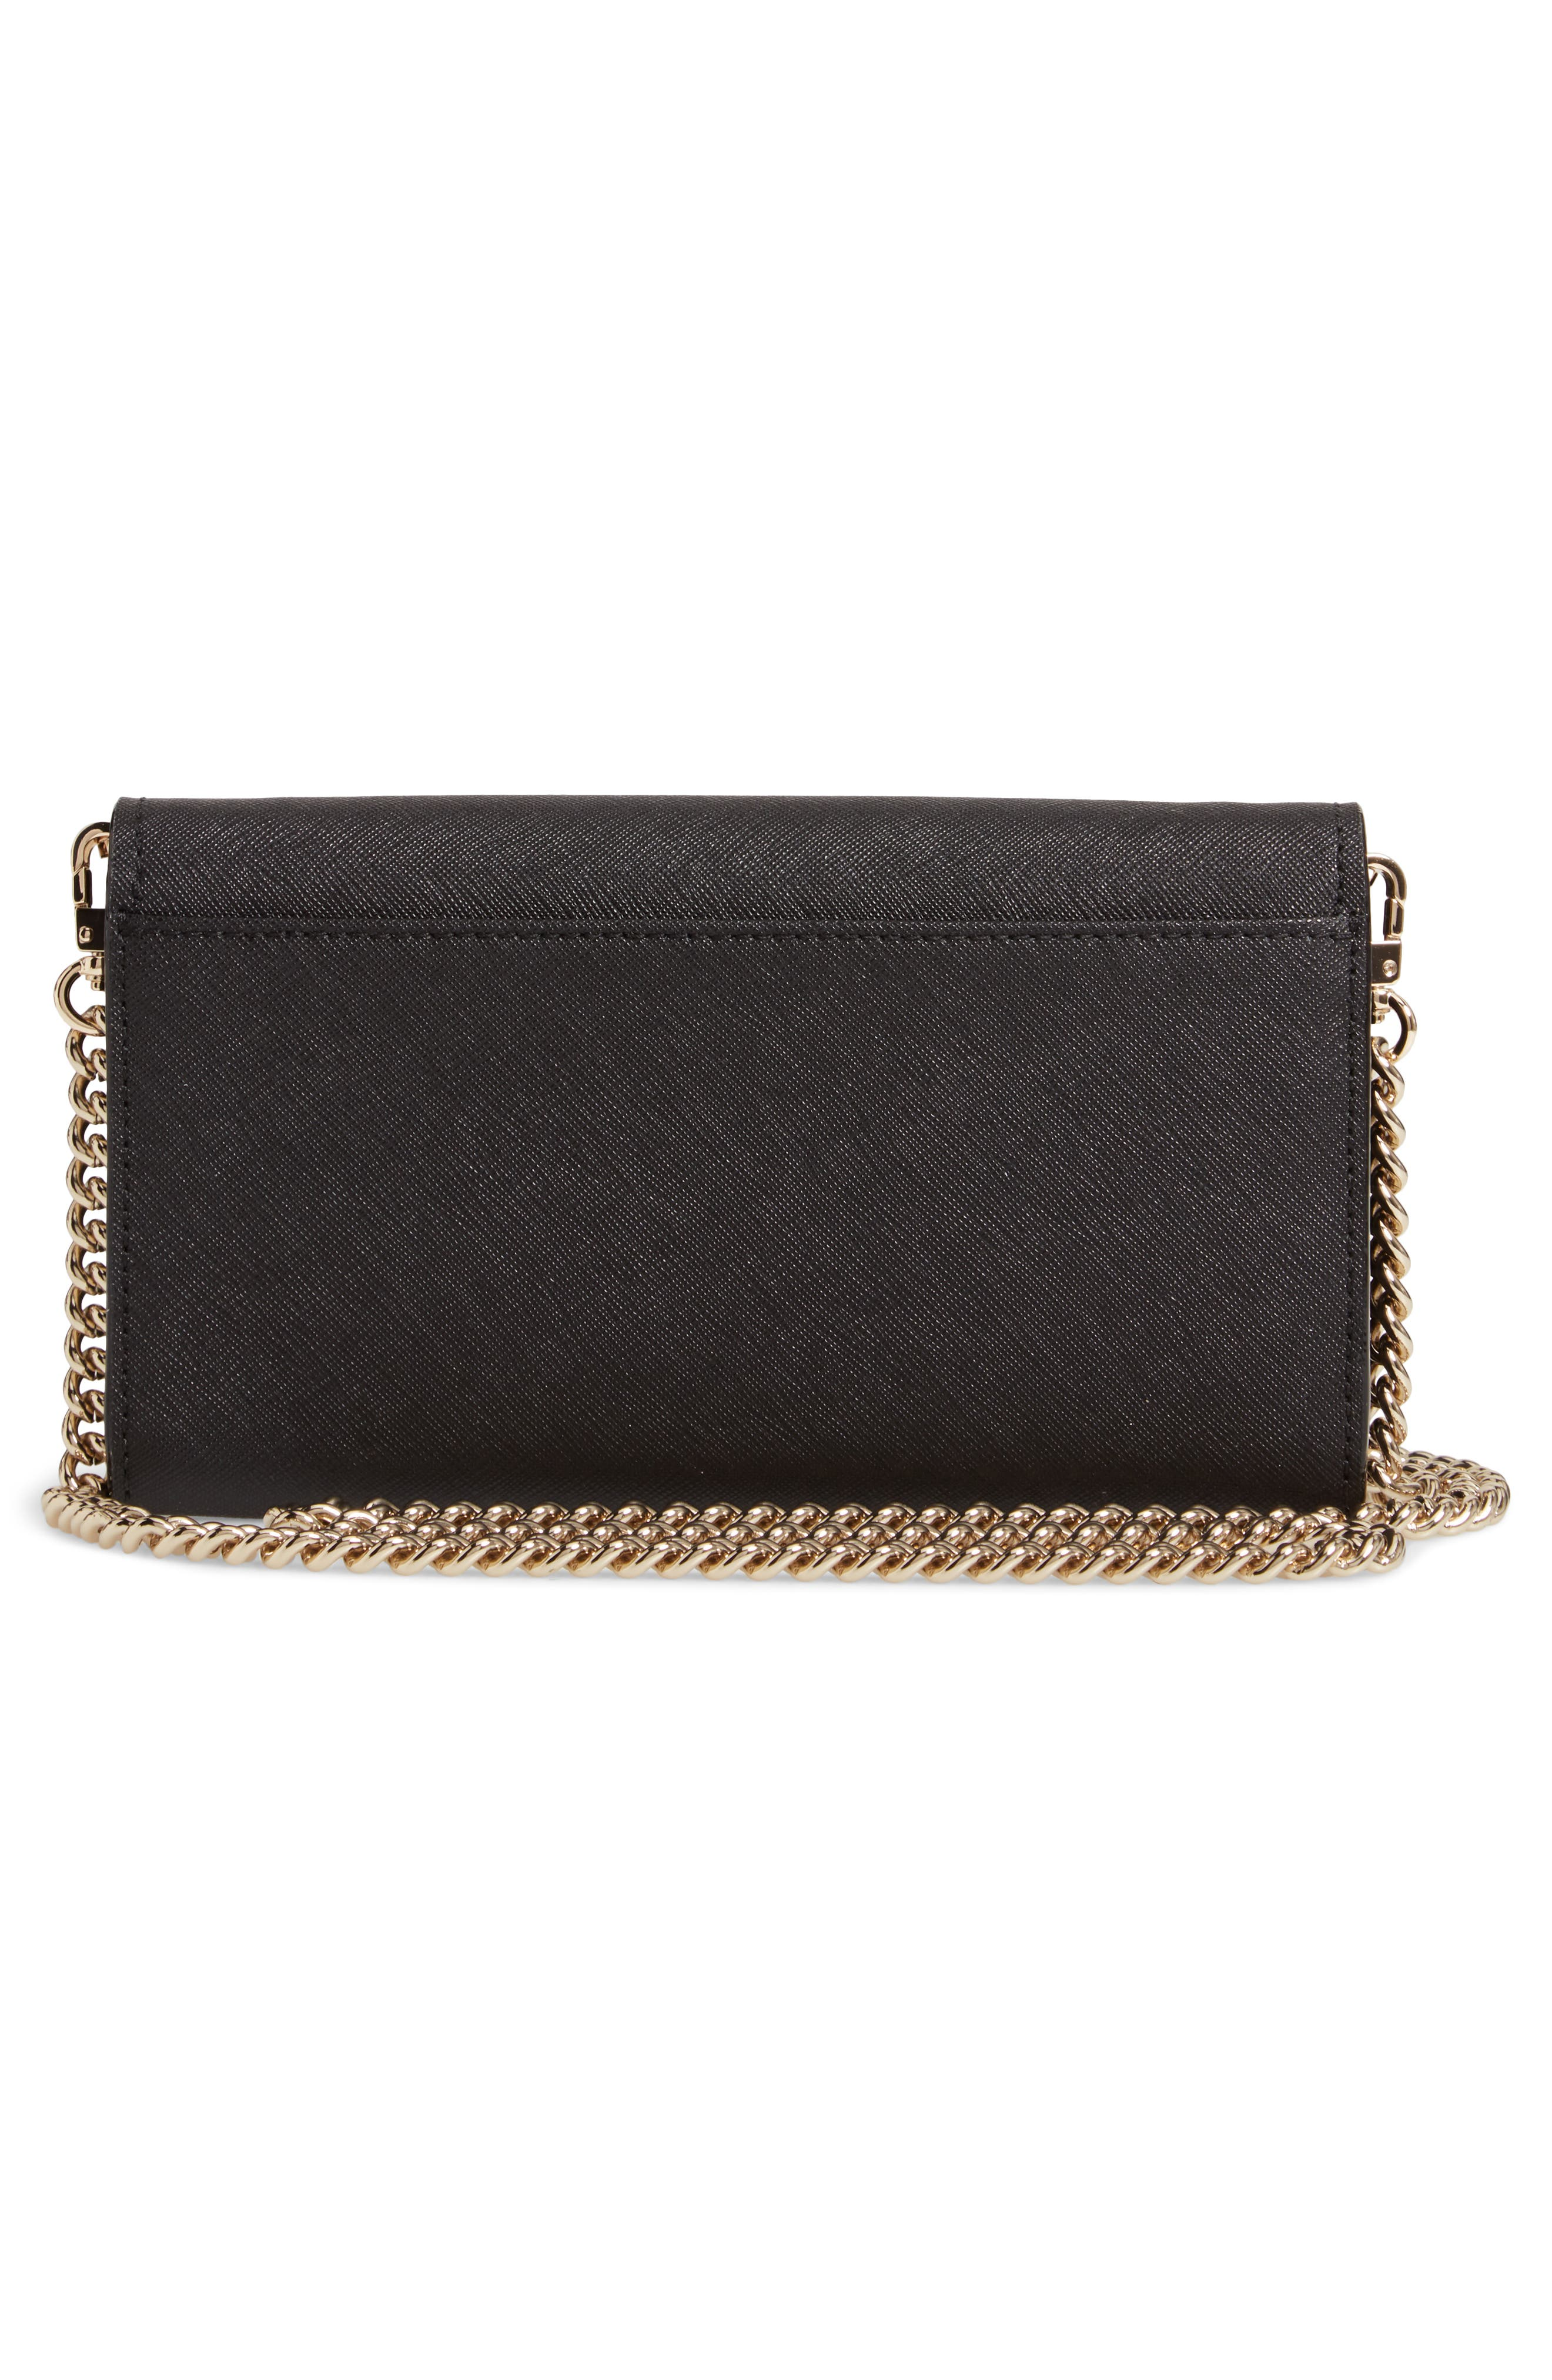 KATE SPADE NEW YORK, cameron street - franny leather wallet on a chain, Alternate thumbnail 3, color, 001